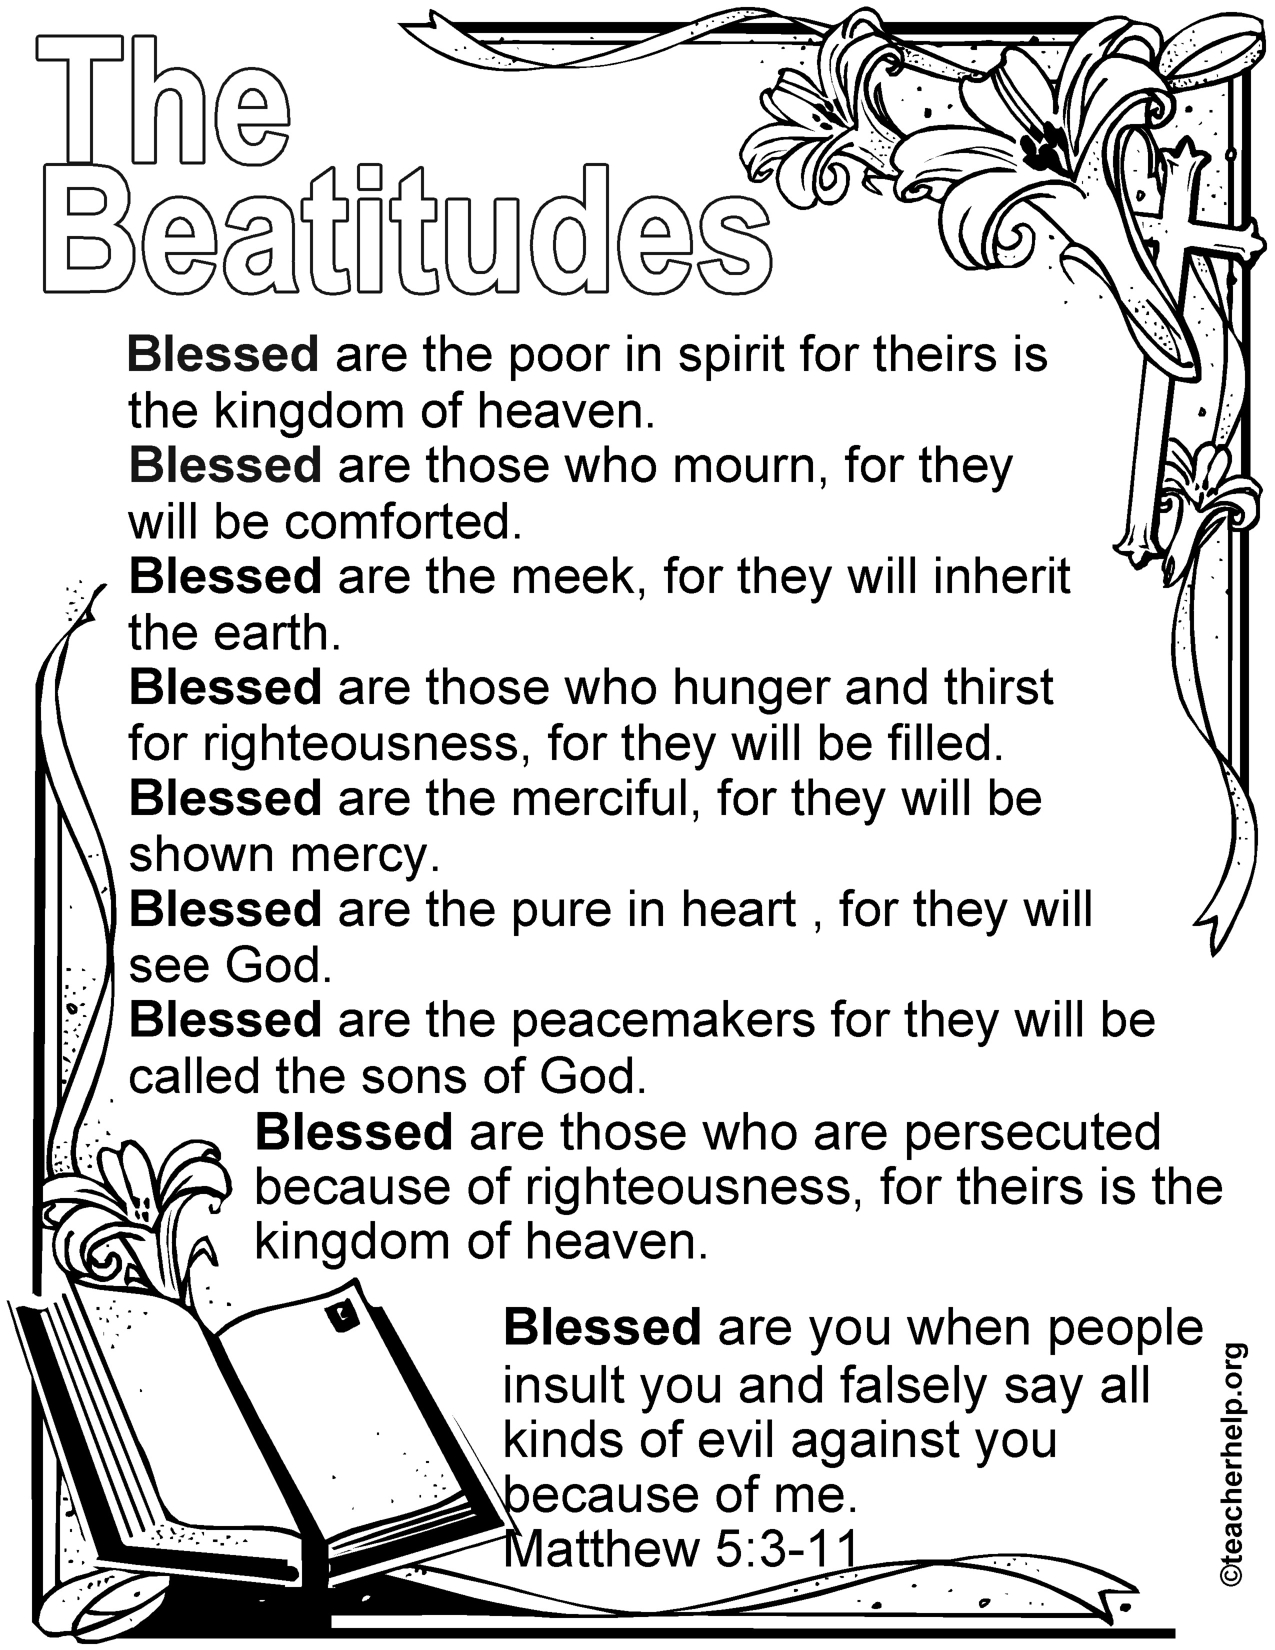 Image Result For Beatitudes For Kids Free Printable | Kids - Free Printable Sunday School Lessons For Kids